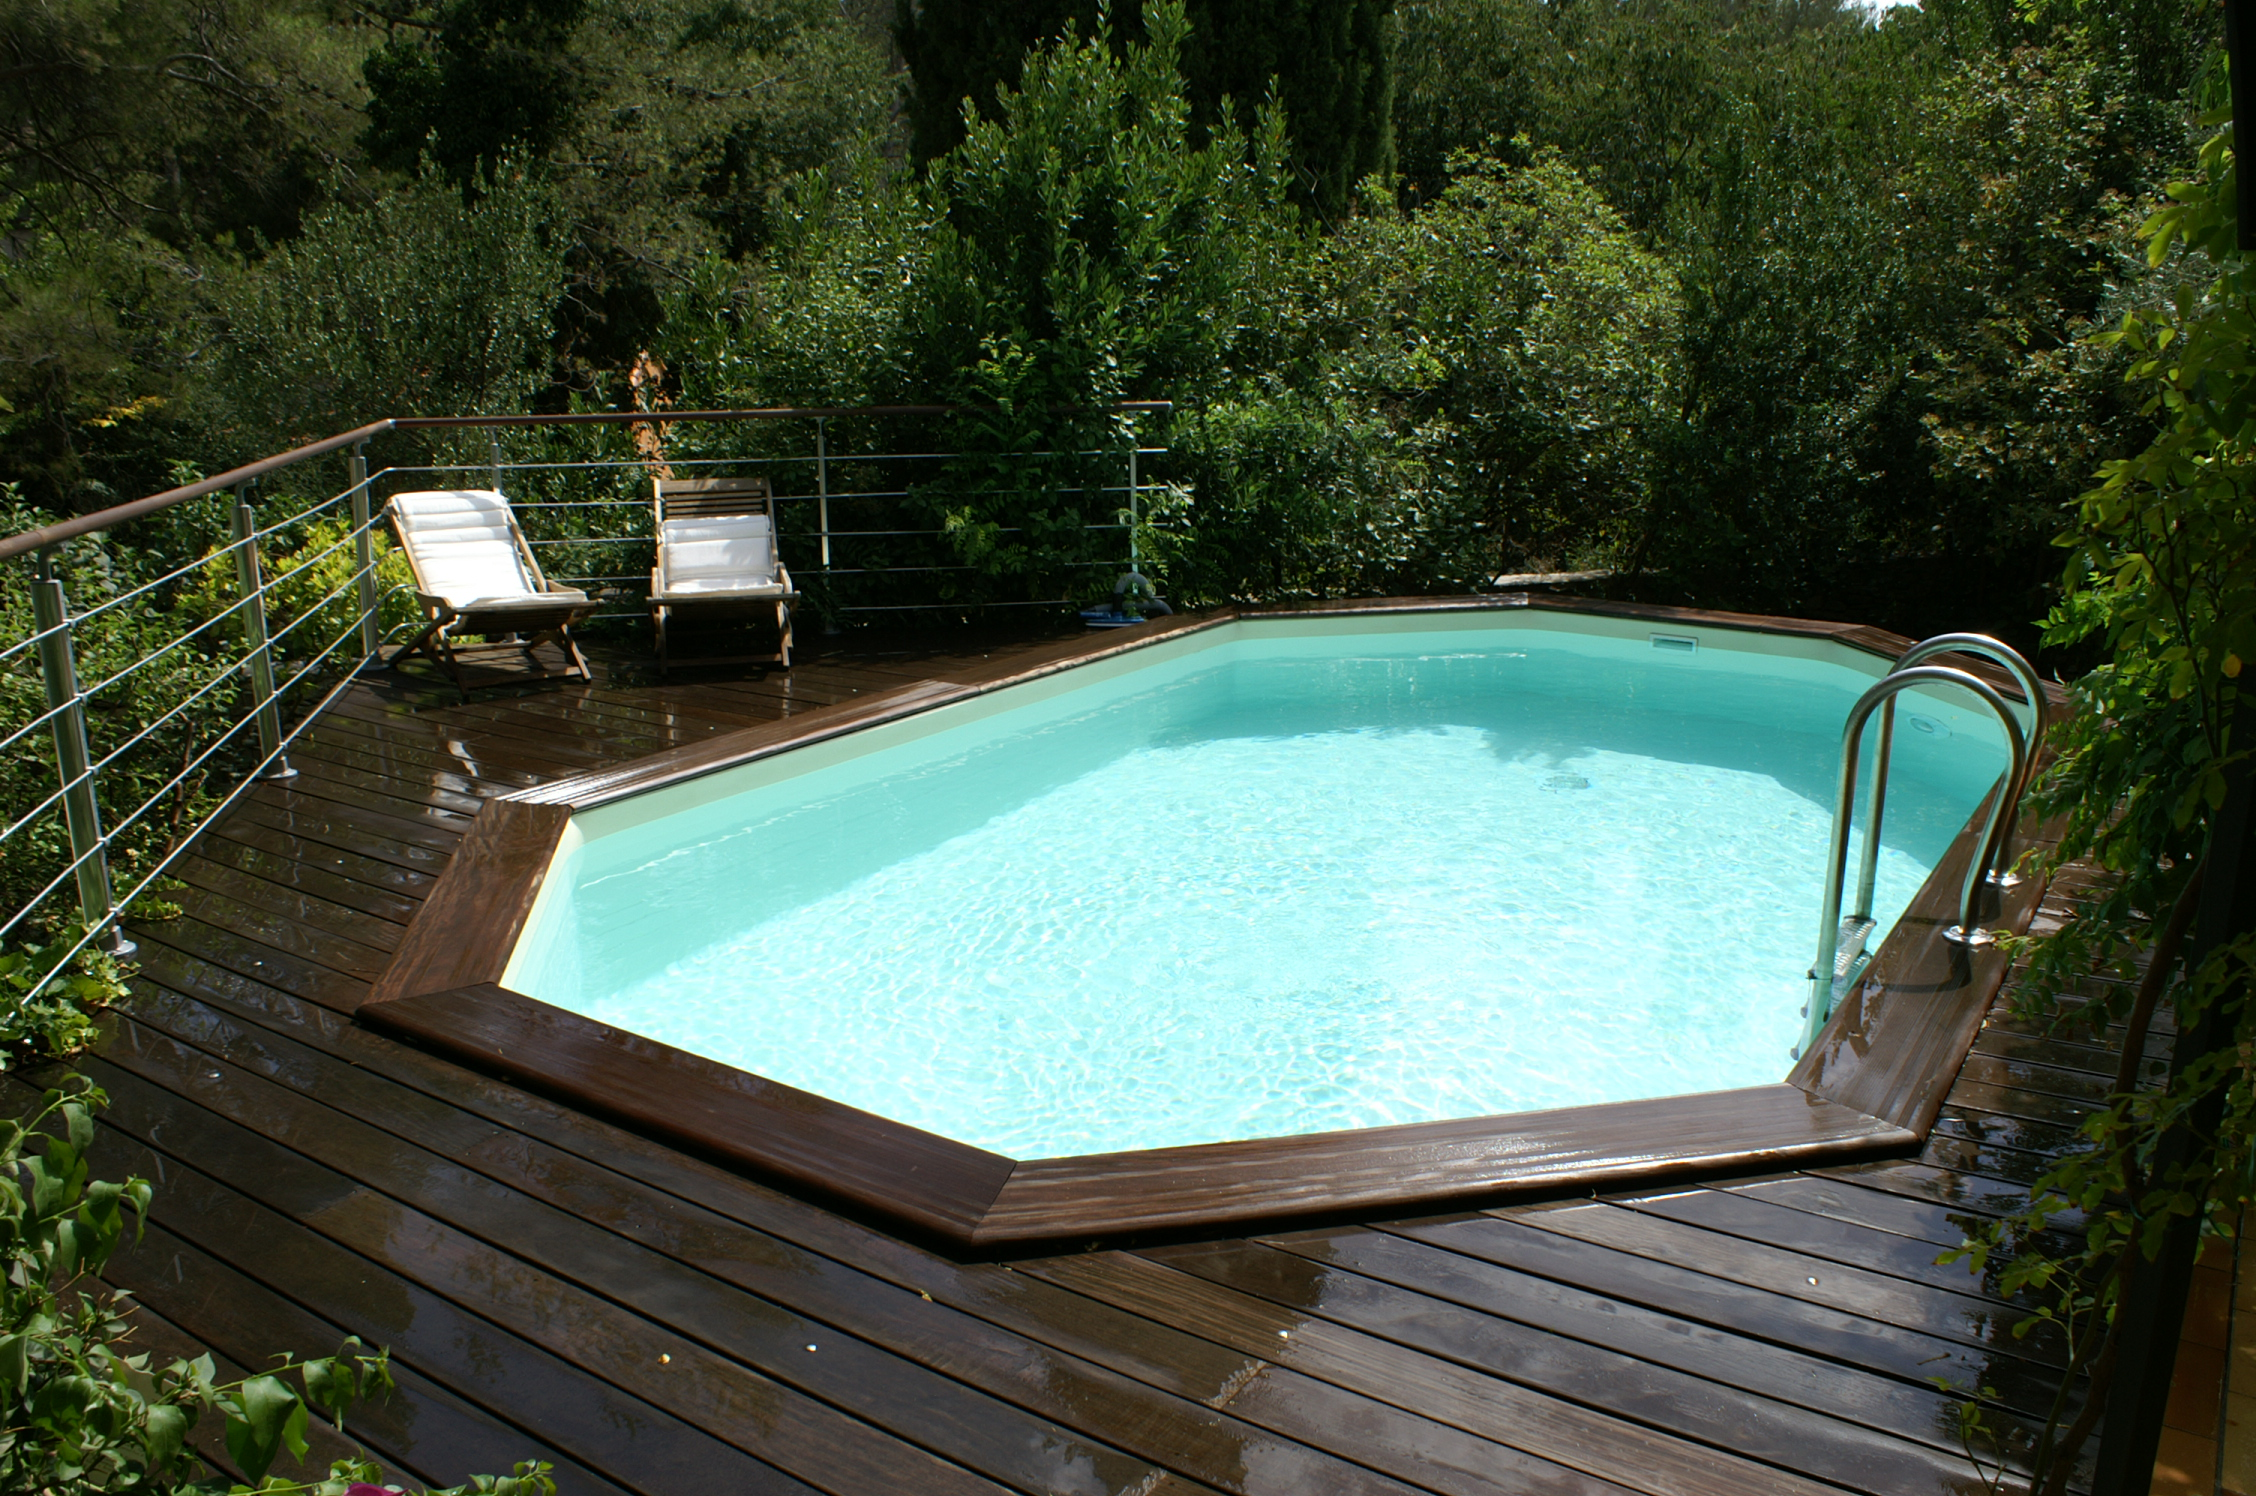 Construction piscines nimes gepad piscines et spa 30000 for Piscine hors sol hauteur 1 m